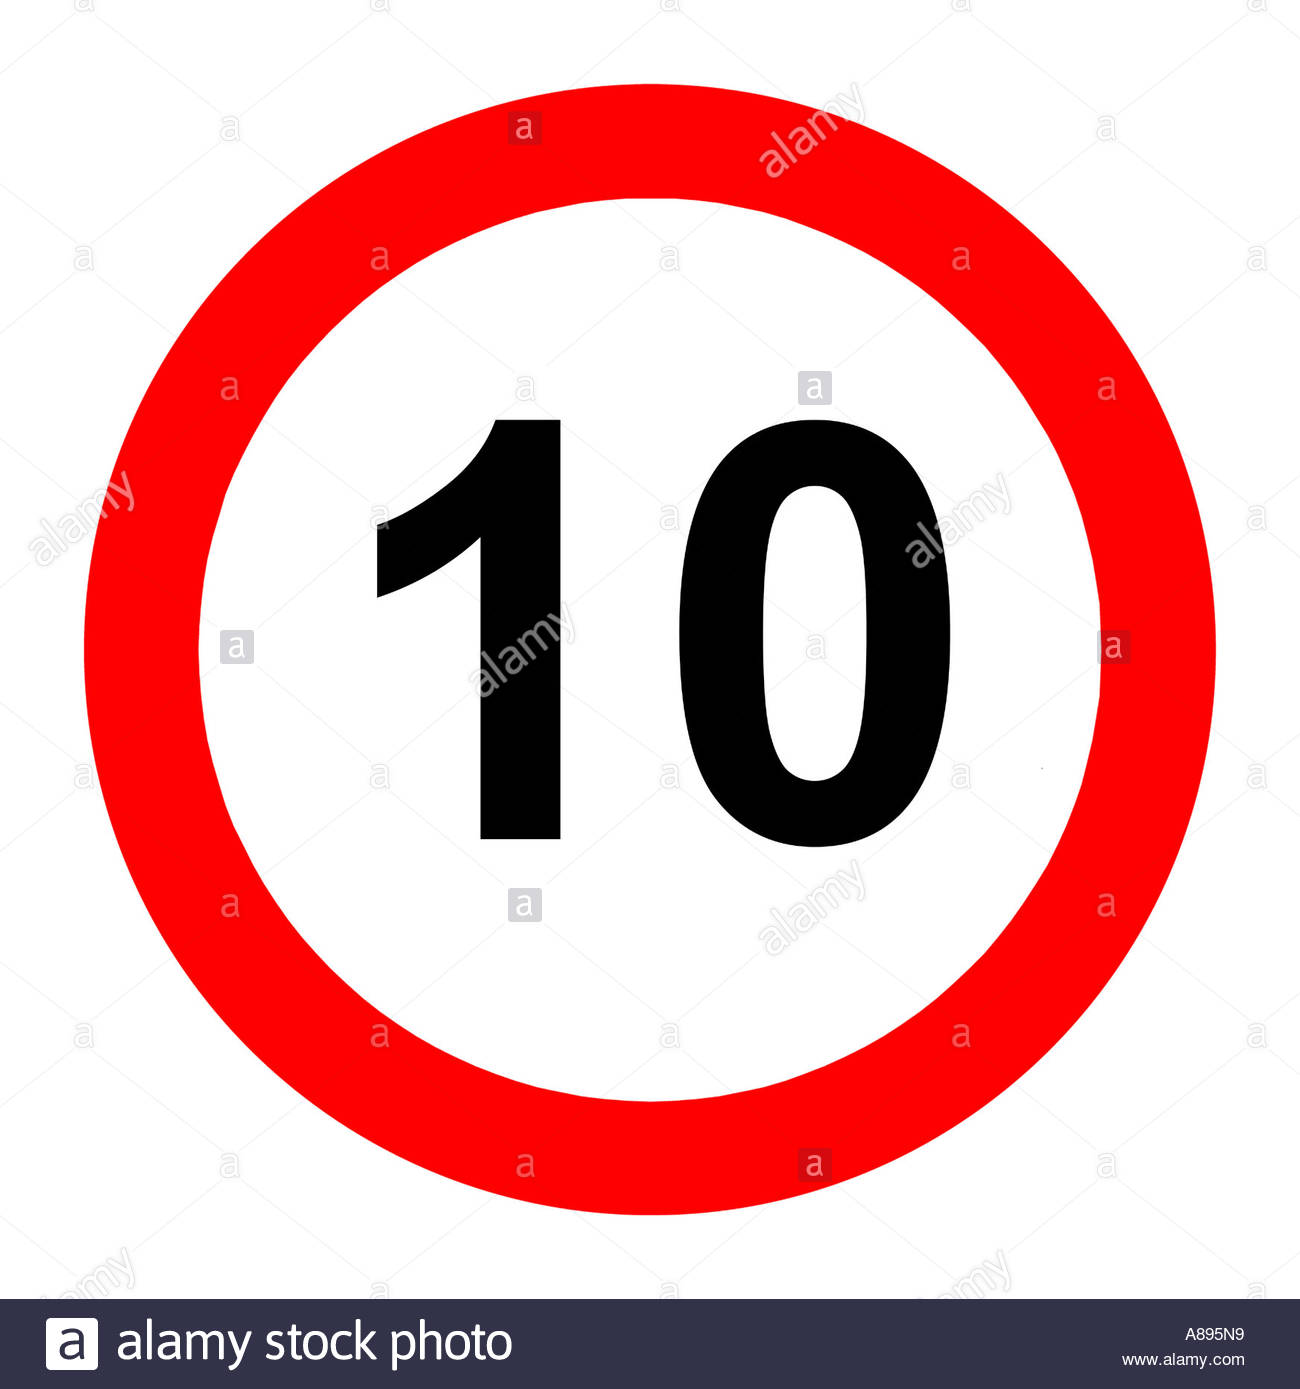 Ten (10) Miles Per Hour Speed Limit Road Sign On White Background.